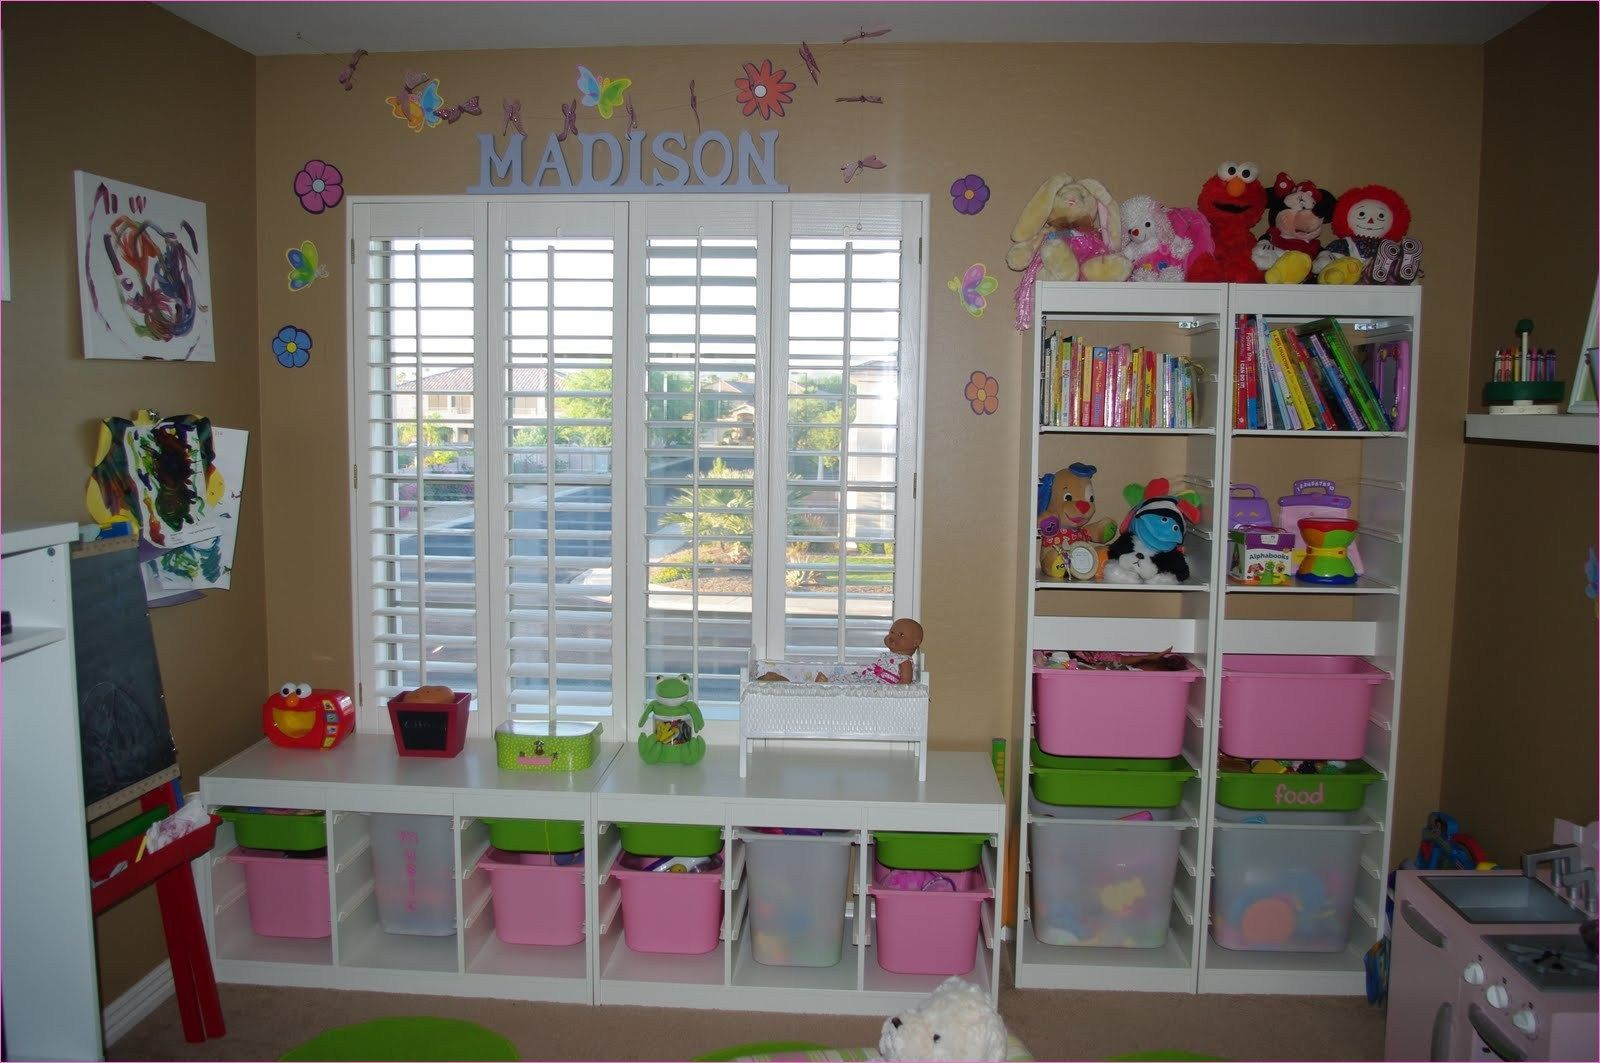 10 Diy Toy Storage Ideas For Any Space Small Bedroom Storage Small Kids Room Storage Kids Room